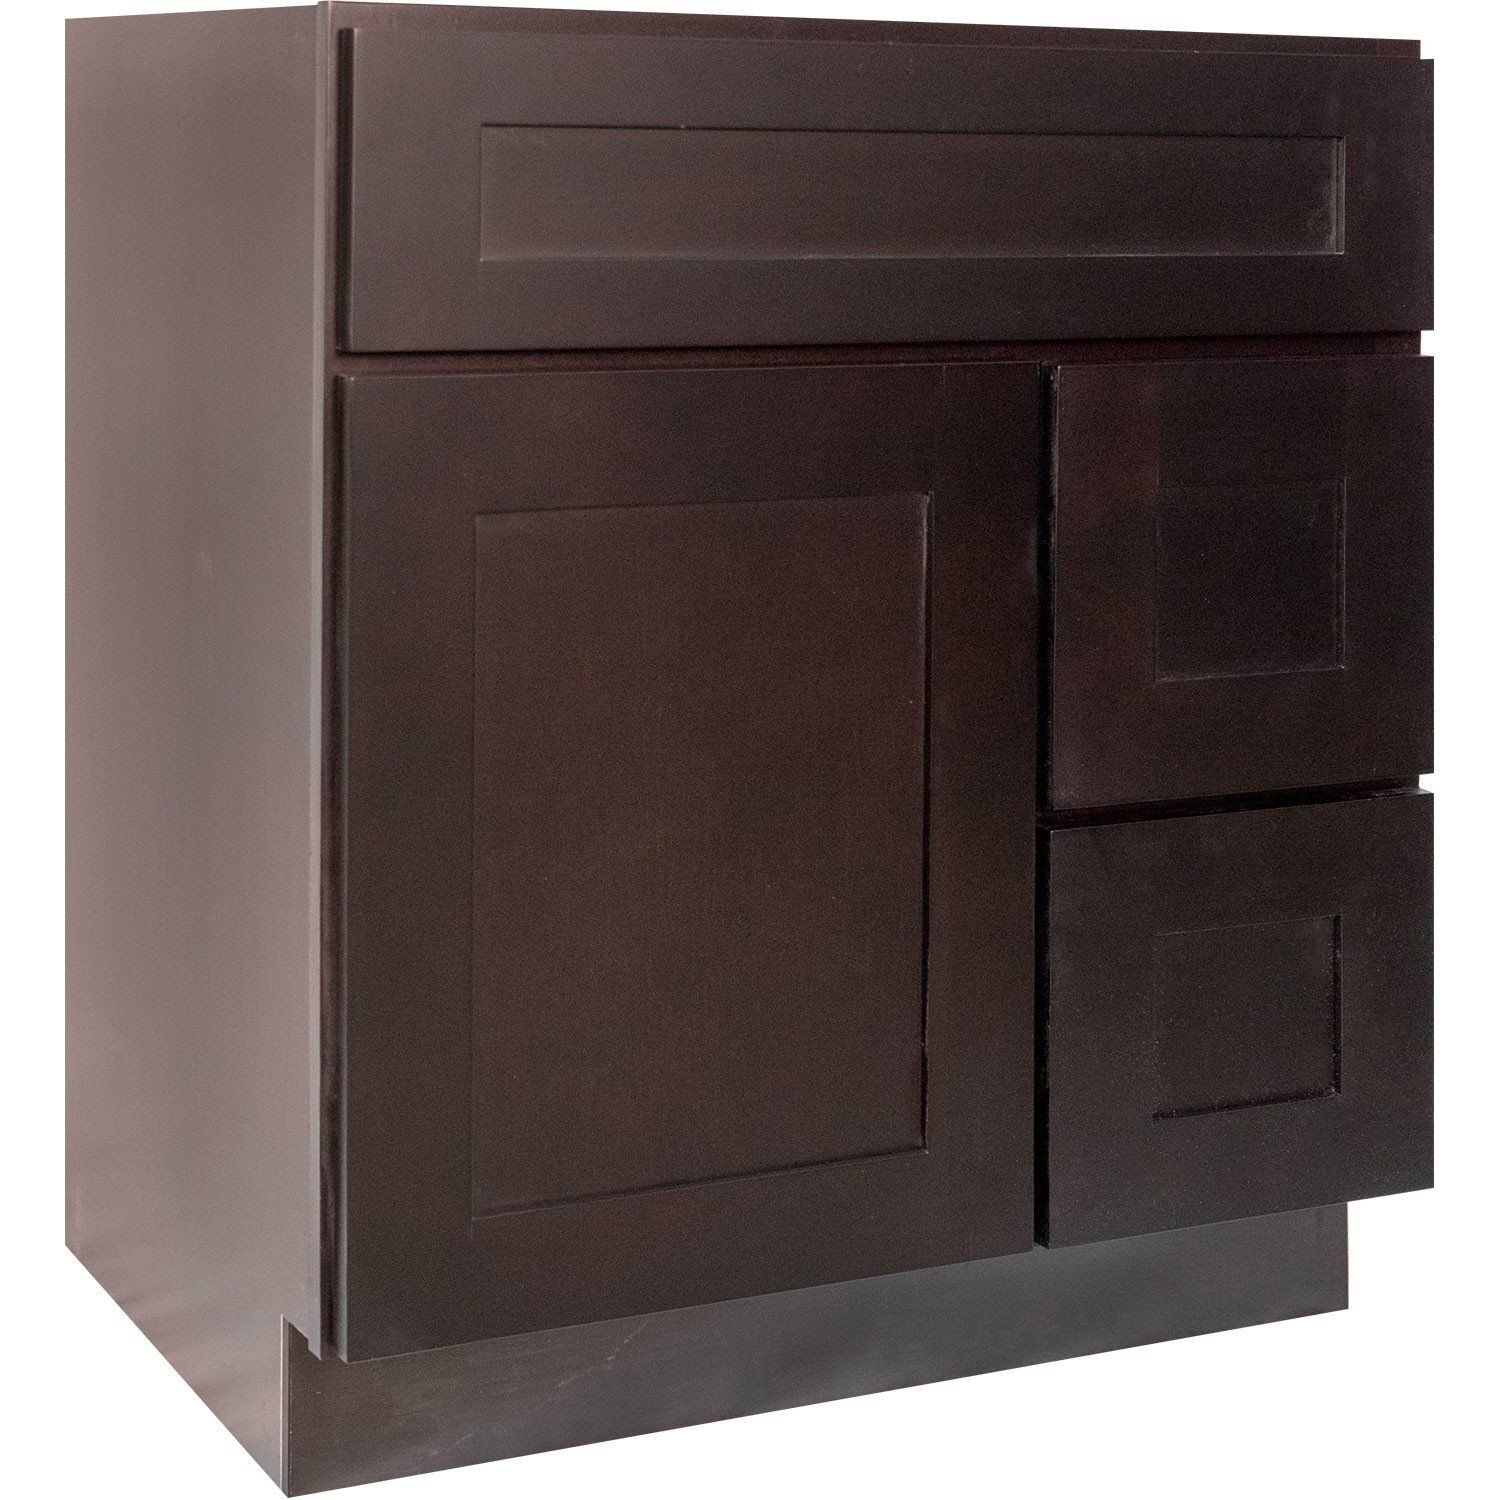 Pic Of  Inch Bathroom Vanity Single Sink Cabinet in Shaker Espresso Dark Brown with u